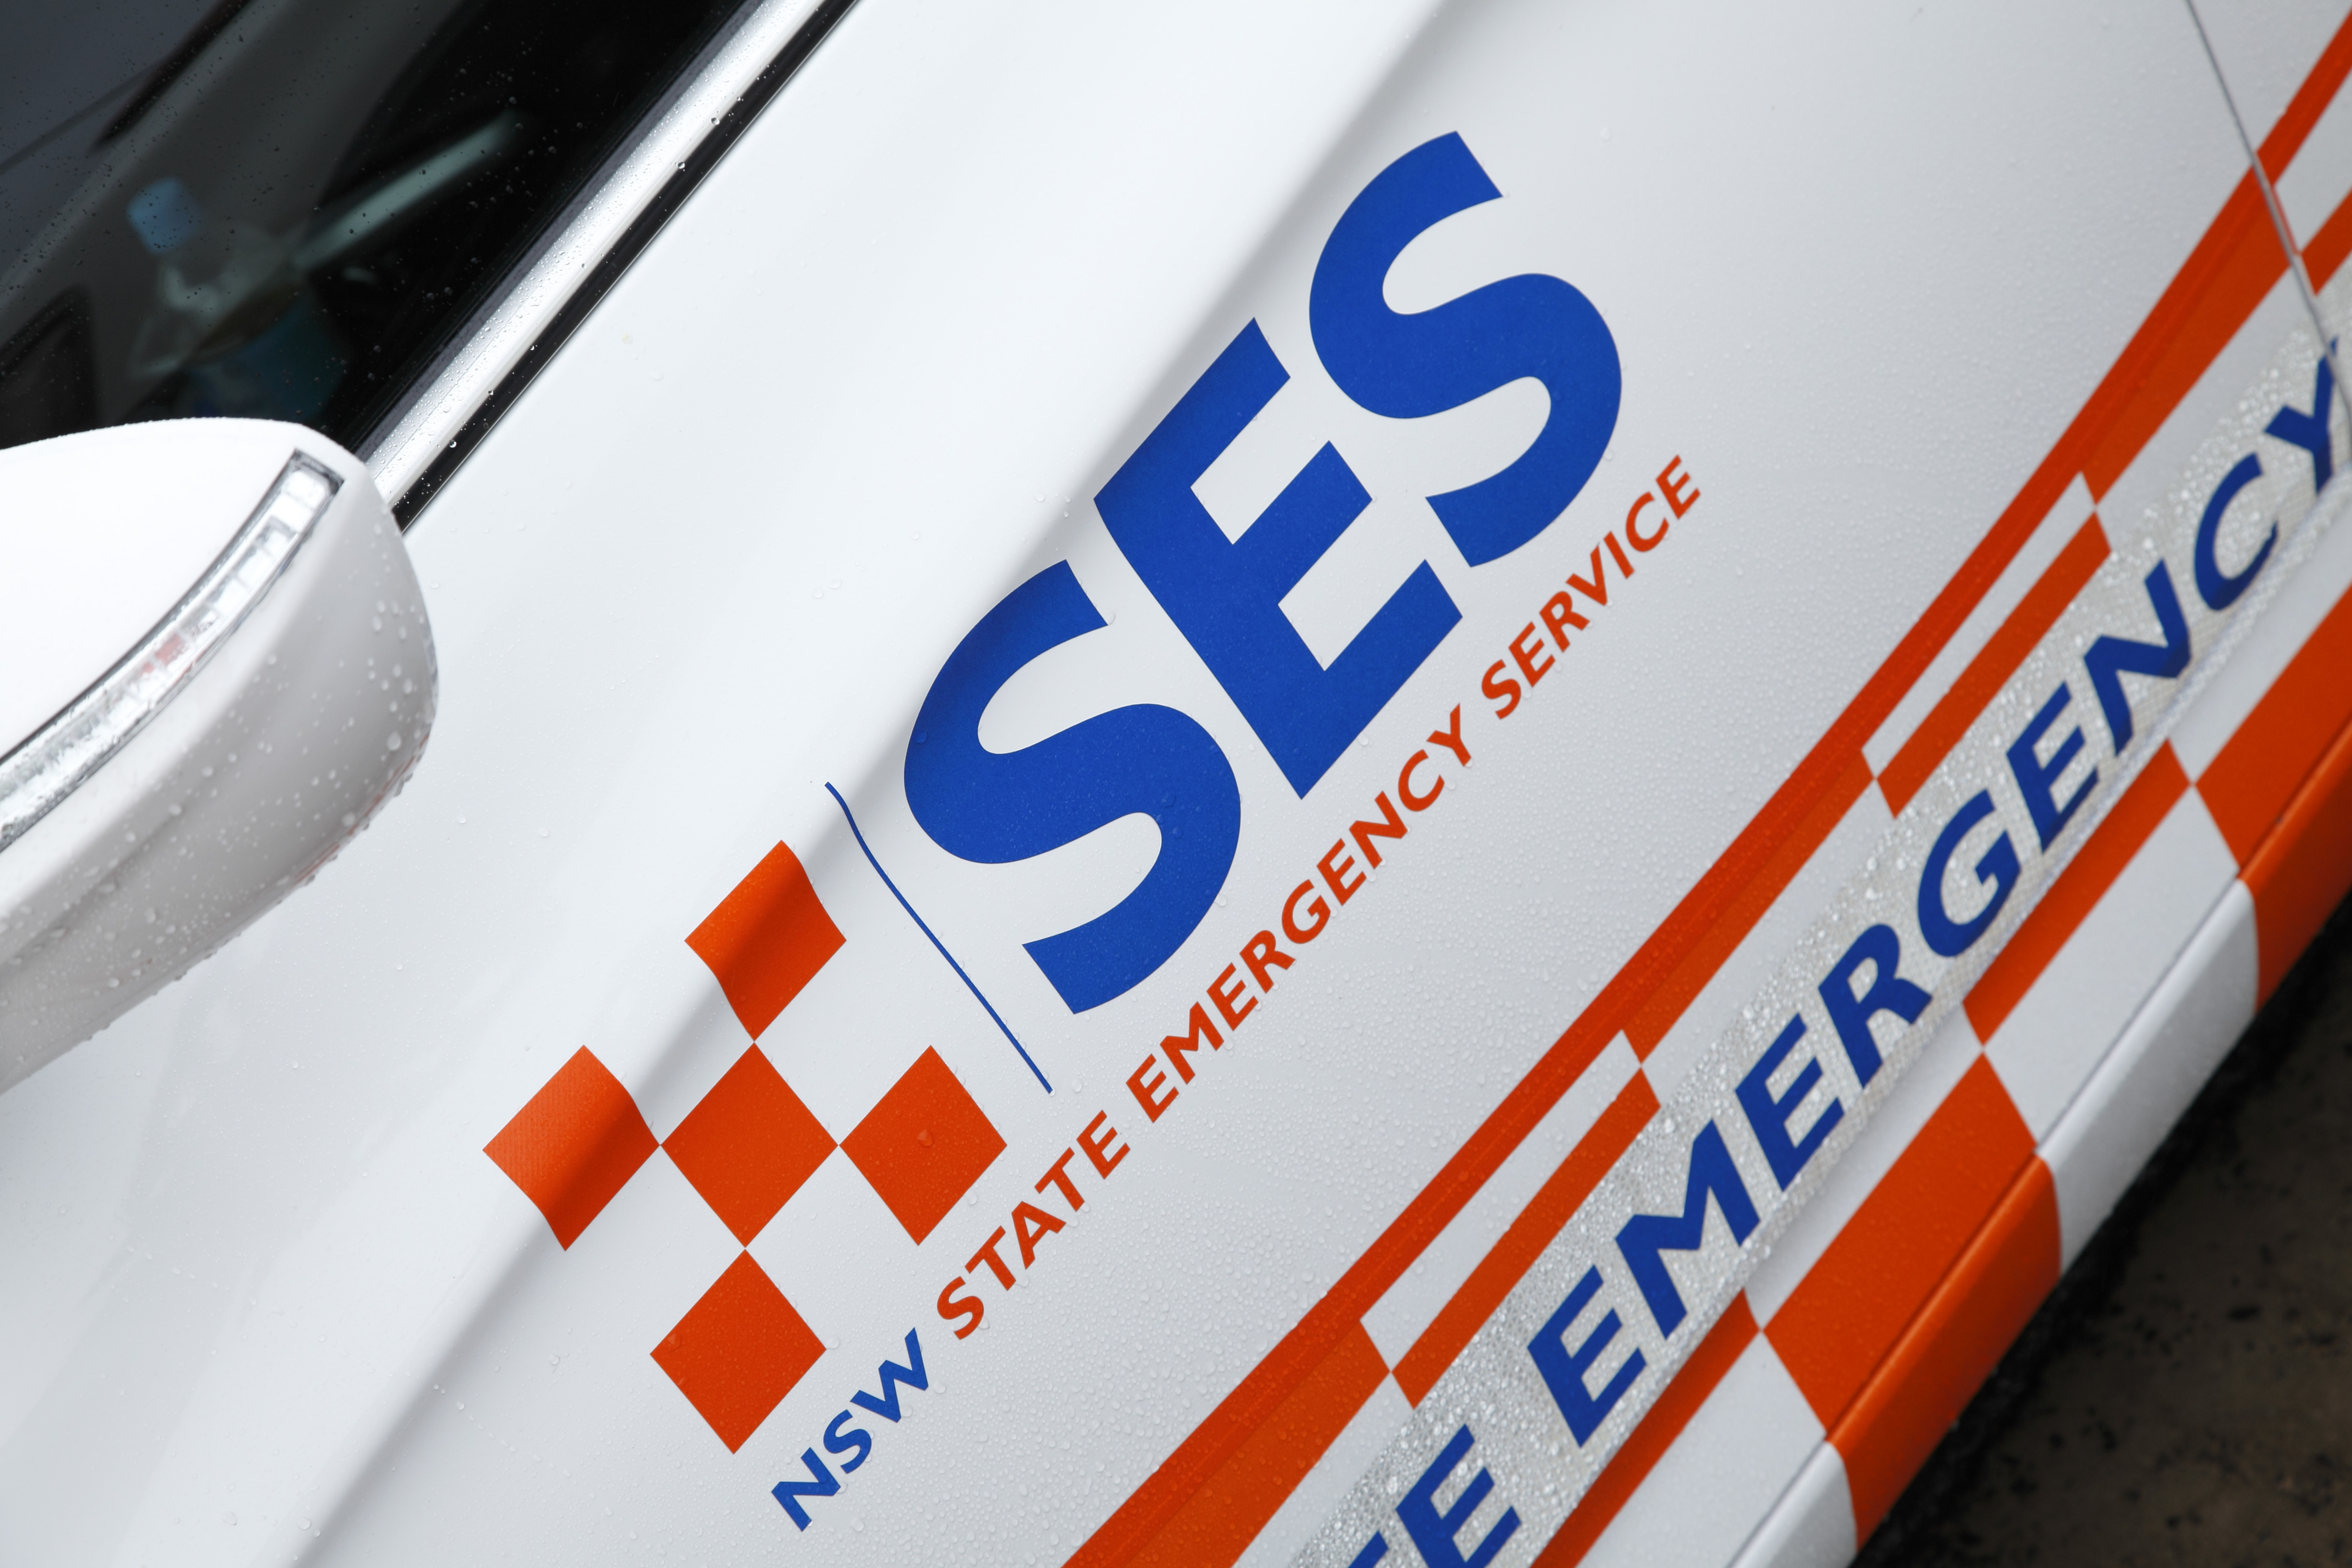 Media statement: NSW SES members assist NSW Police in search